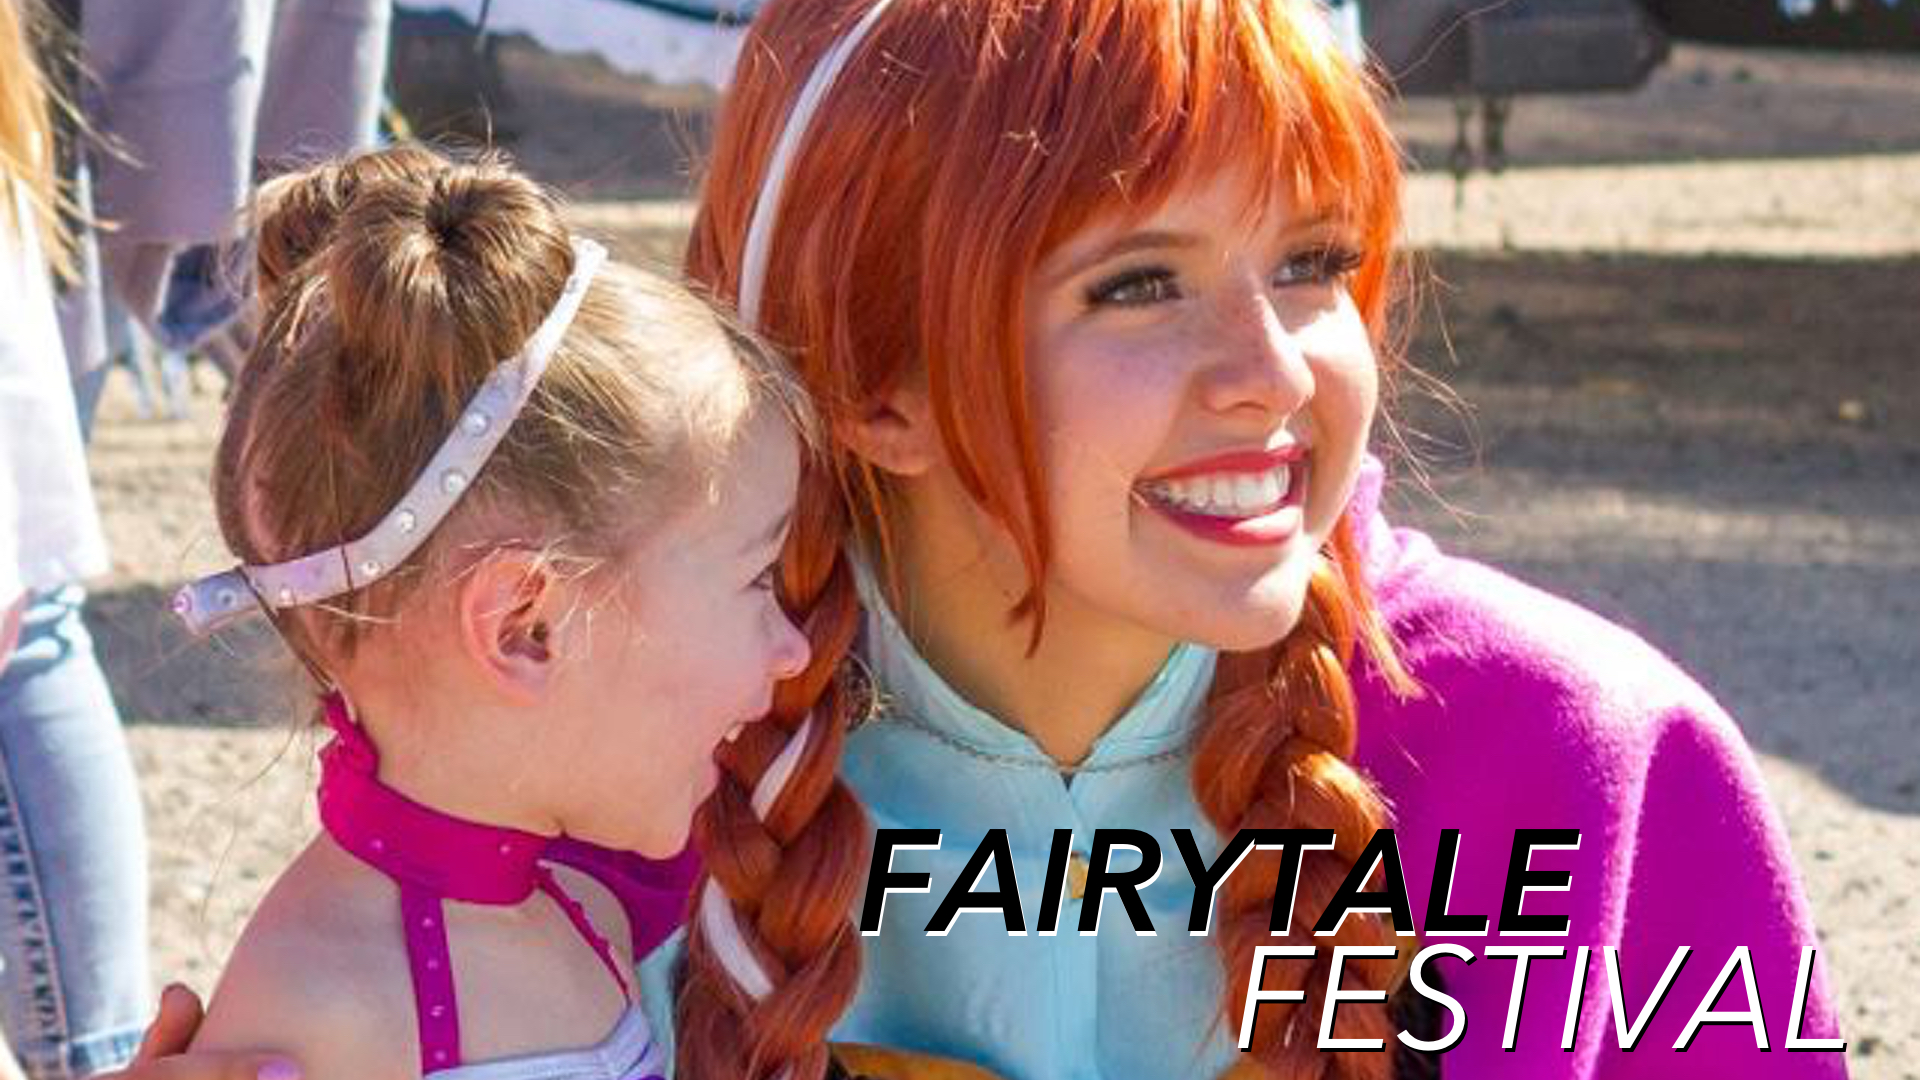 Fairytale Festival Graphic .jpg